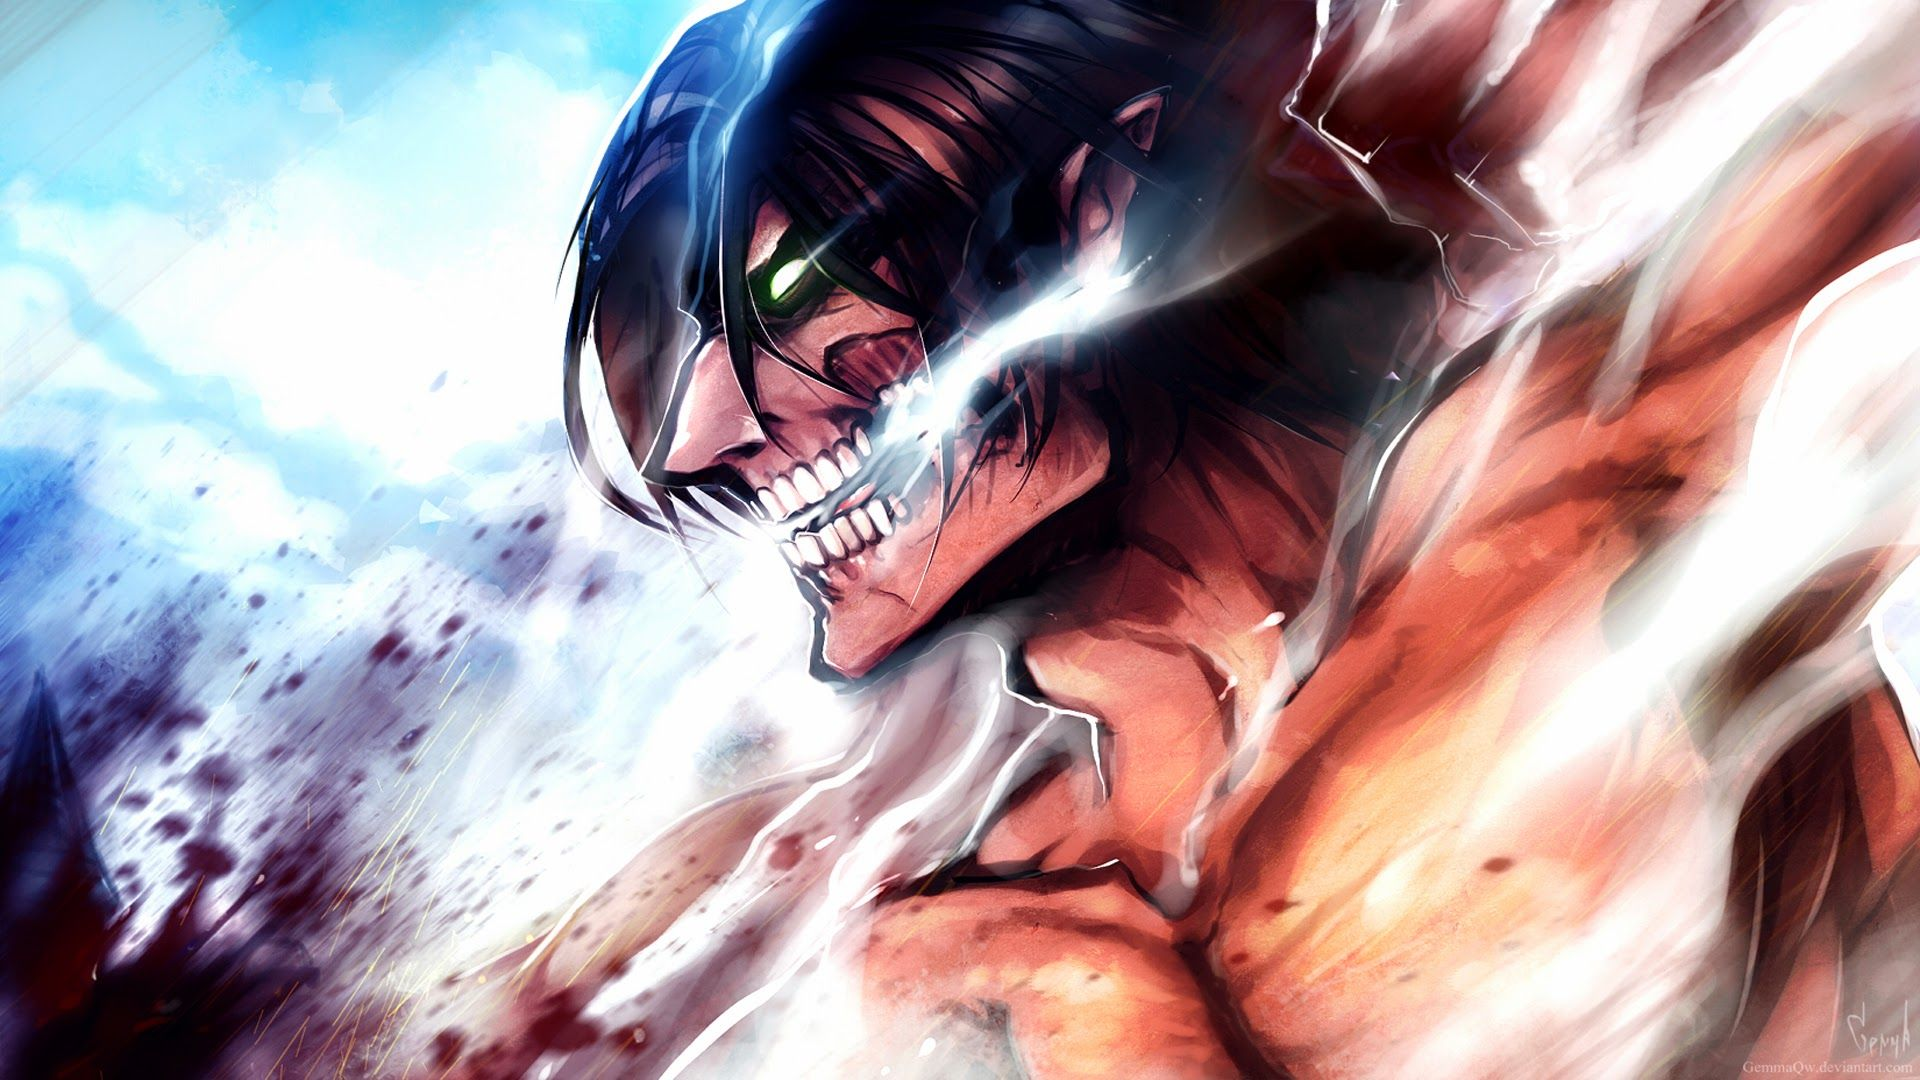 Attack on Titan Chapter 138 Release Date, Raws Scans and Read Online